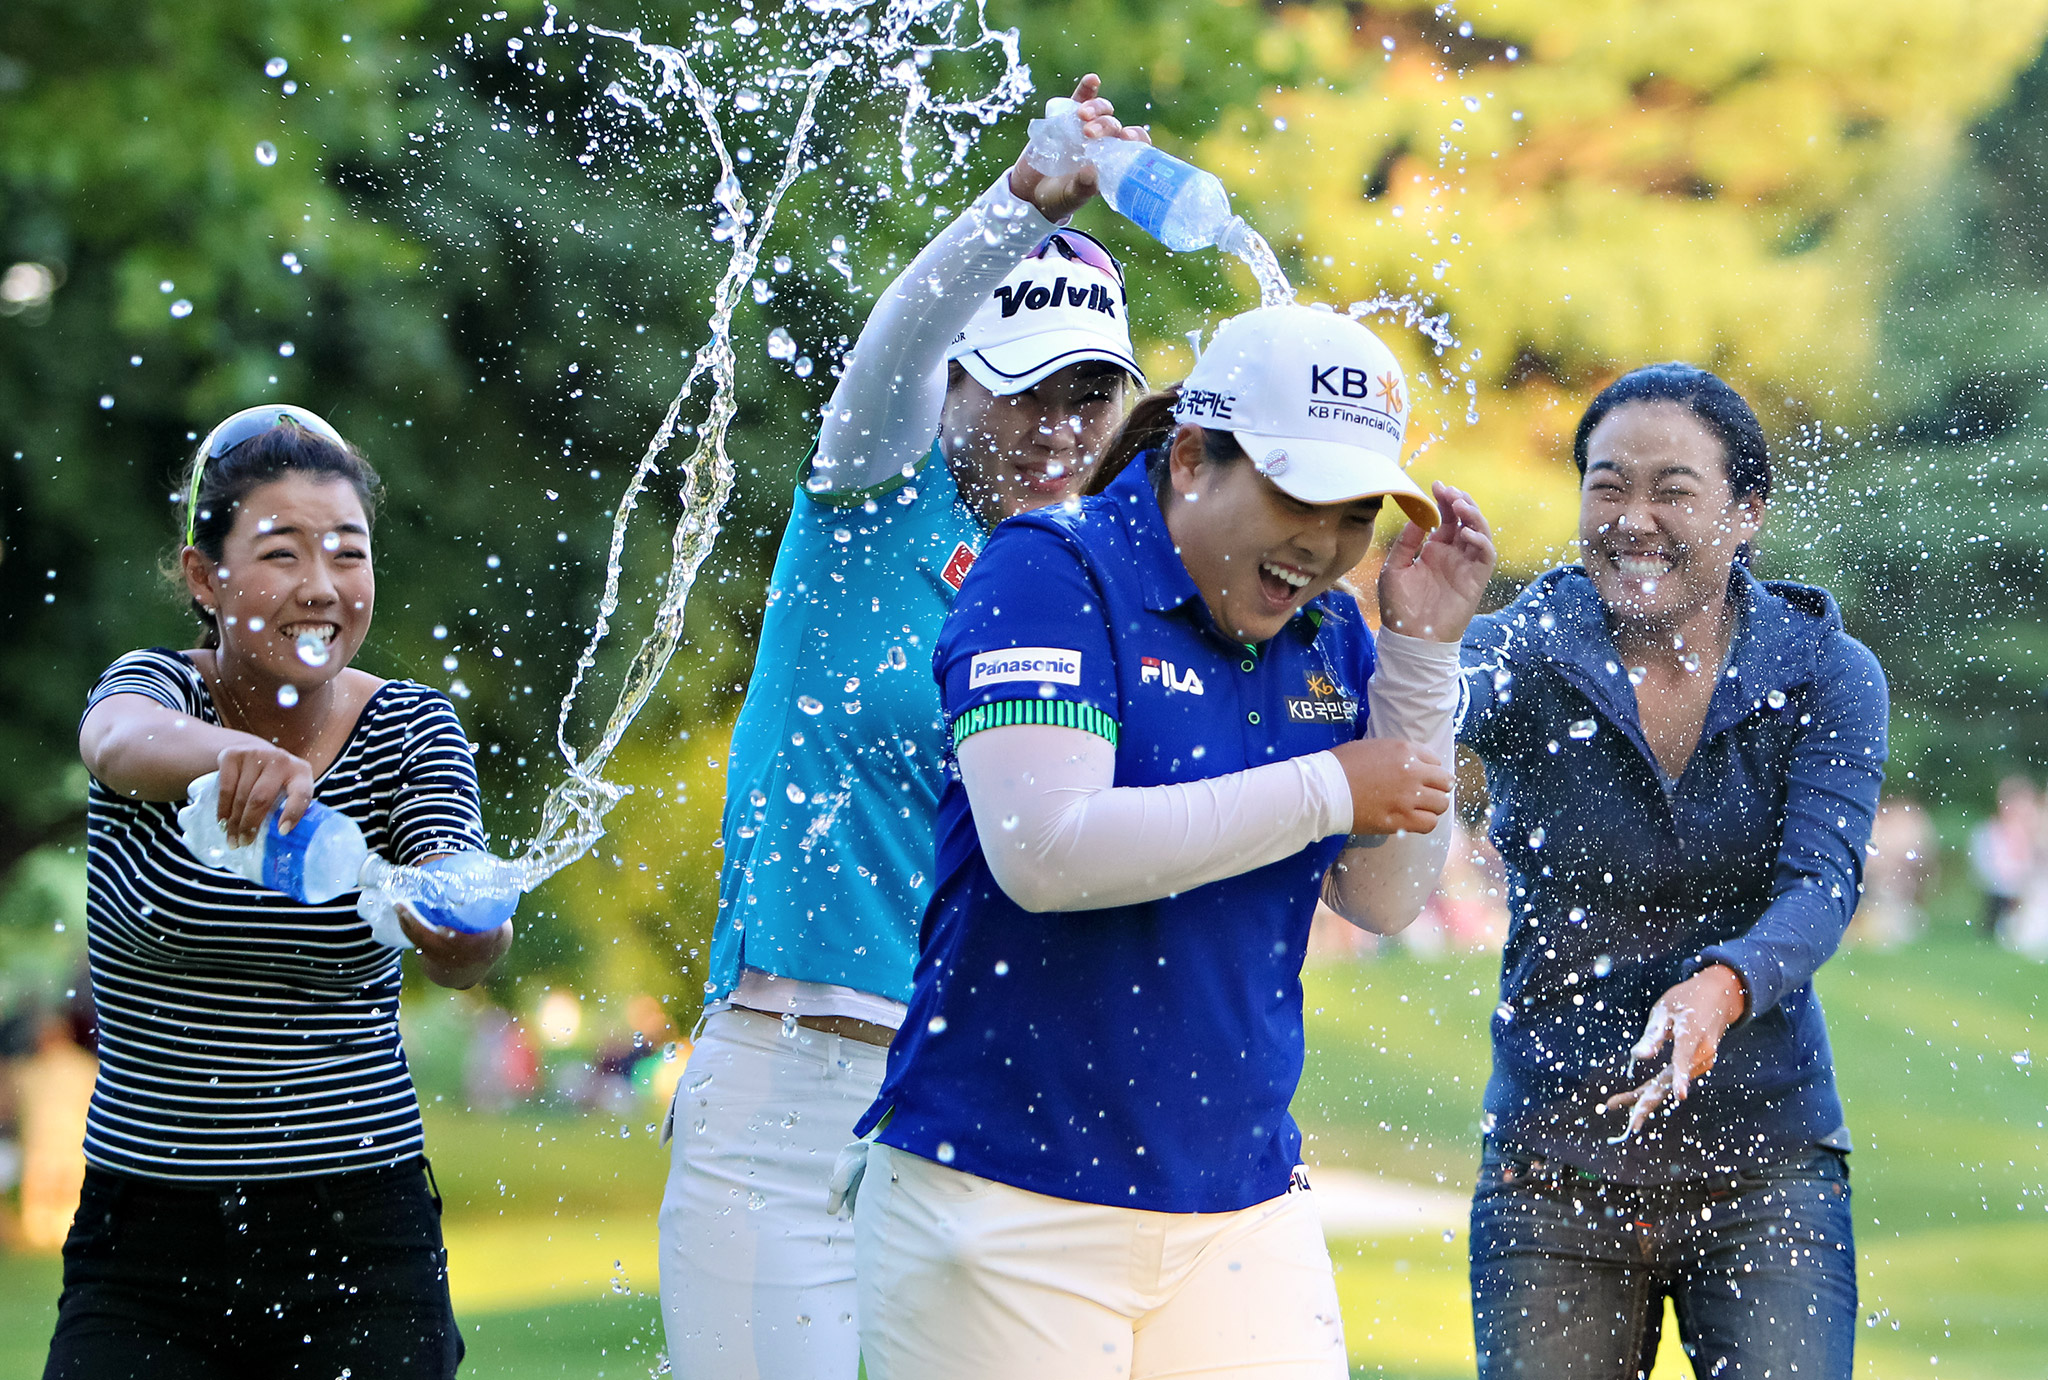 Inbee Park and gets sprayed with champagne after winning the LPGA Championship in Pittsford, N.Y. Park successfully defended her title, beating Brittany Lincicome with a par on the first hole of a playoff to end the United States' major streak at three.